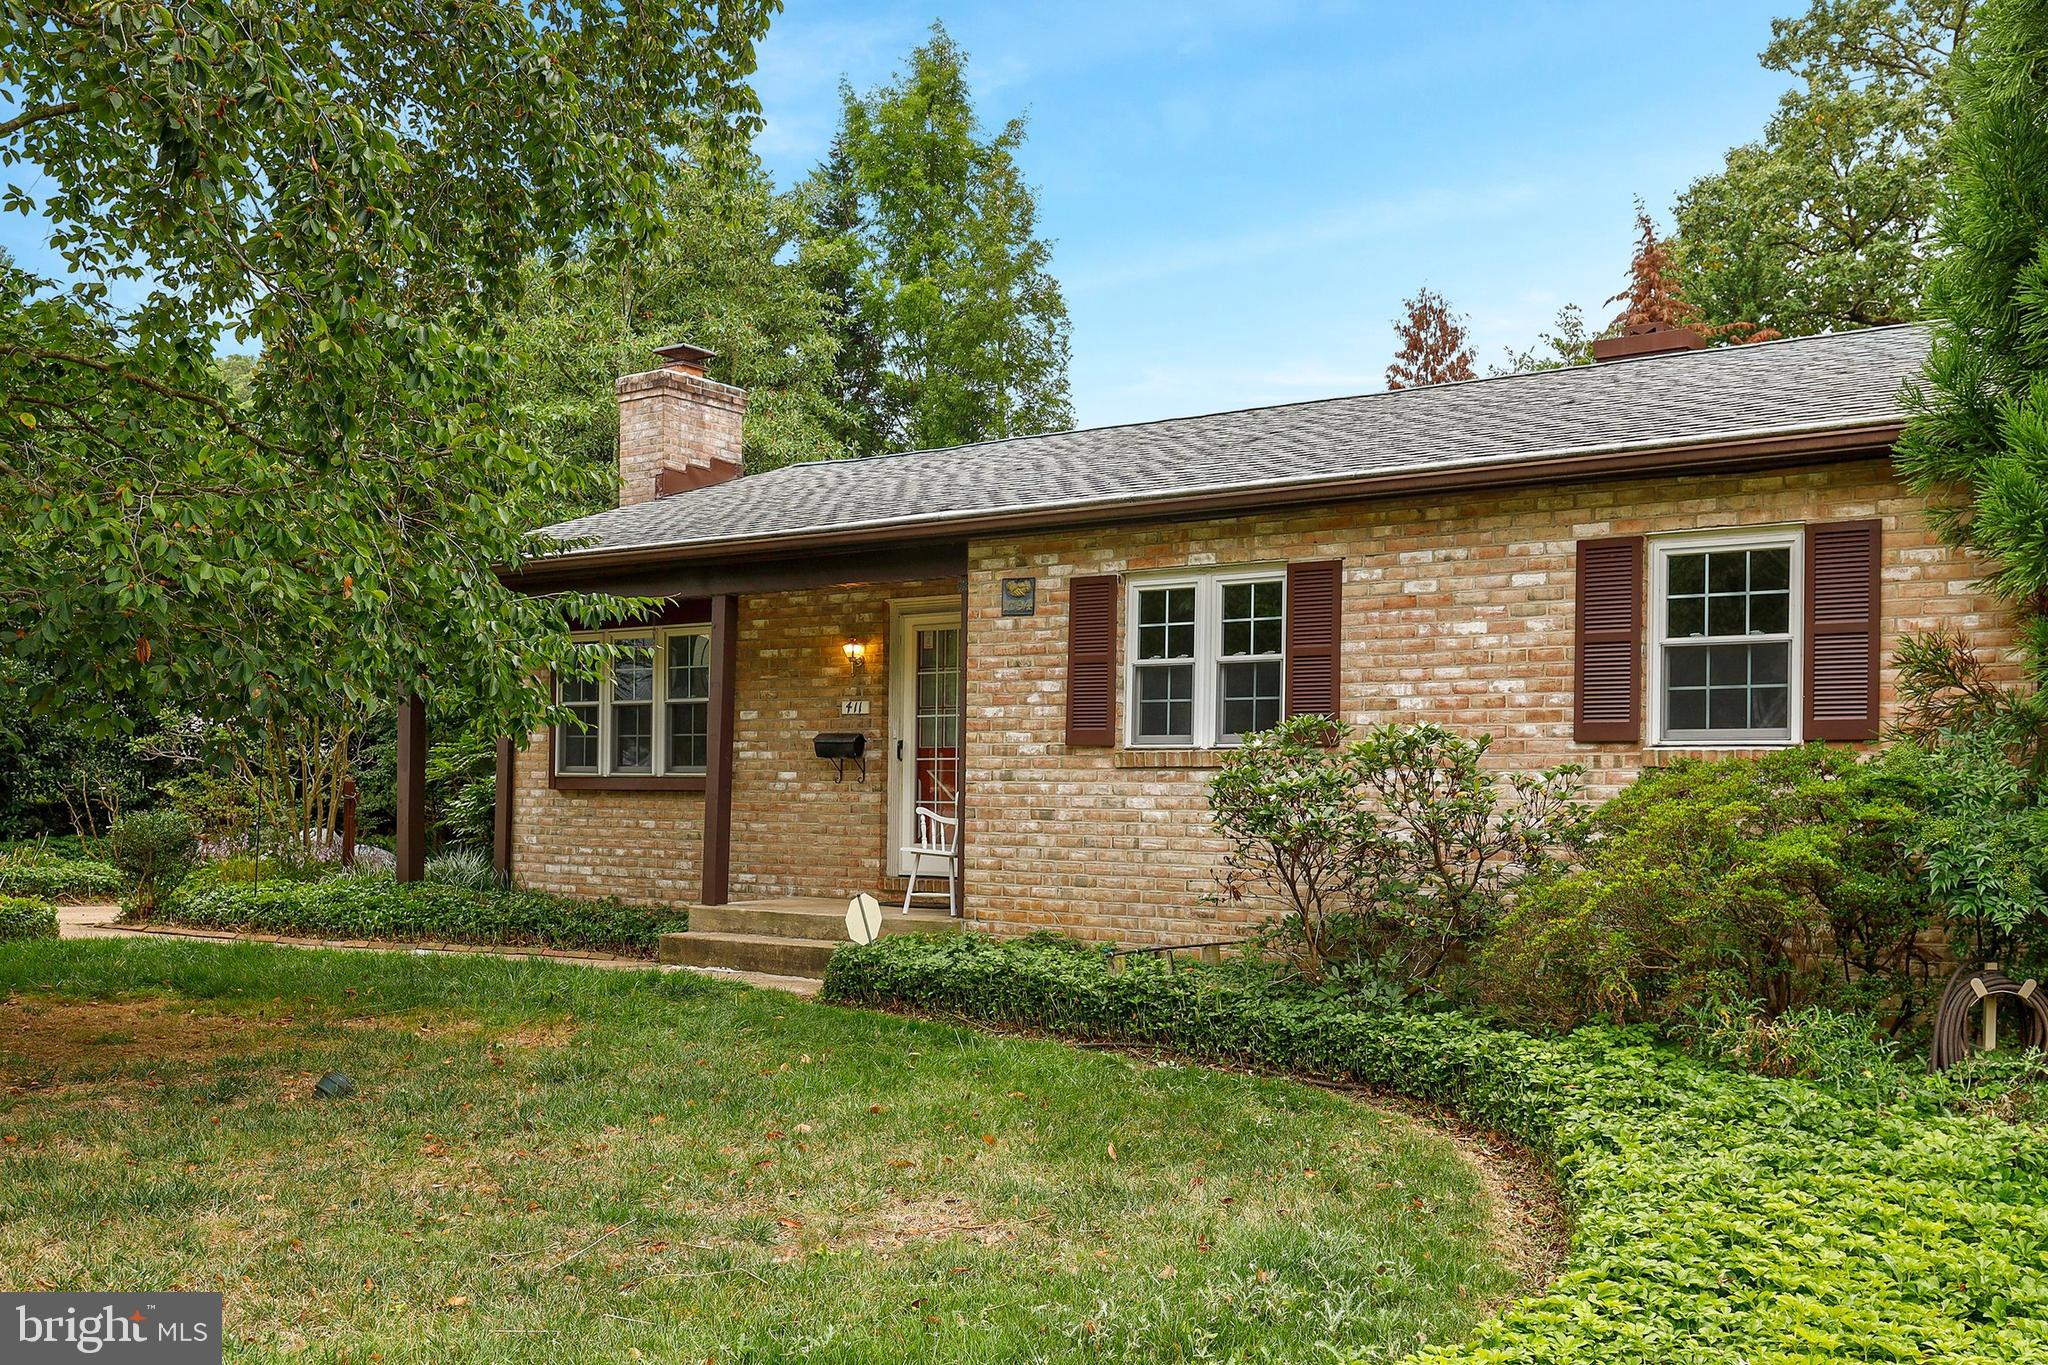 Don't miss this gem in Woodbridge Valley! Gleaming wood floors throughout main level. Spacious living room with wood burning fireplace. 2019 renovations of both full bathrooms and new stainless steel kitchen appliances. Finished lower level with powder room. Lots of natural light throughout. Welcome Home!